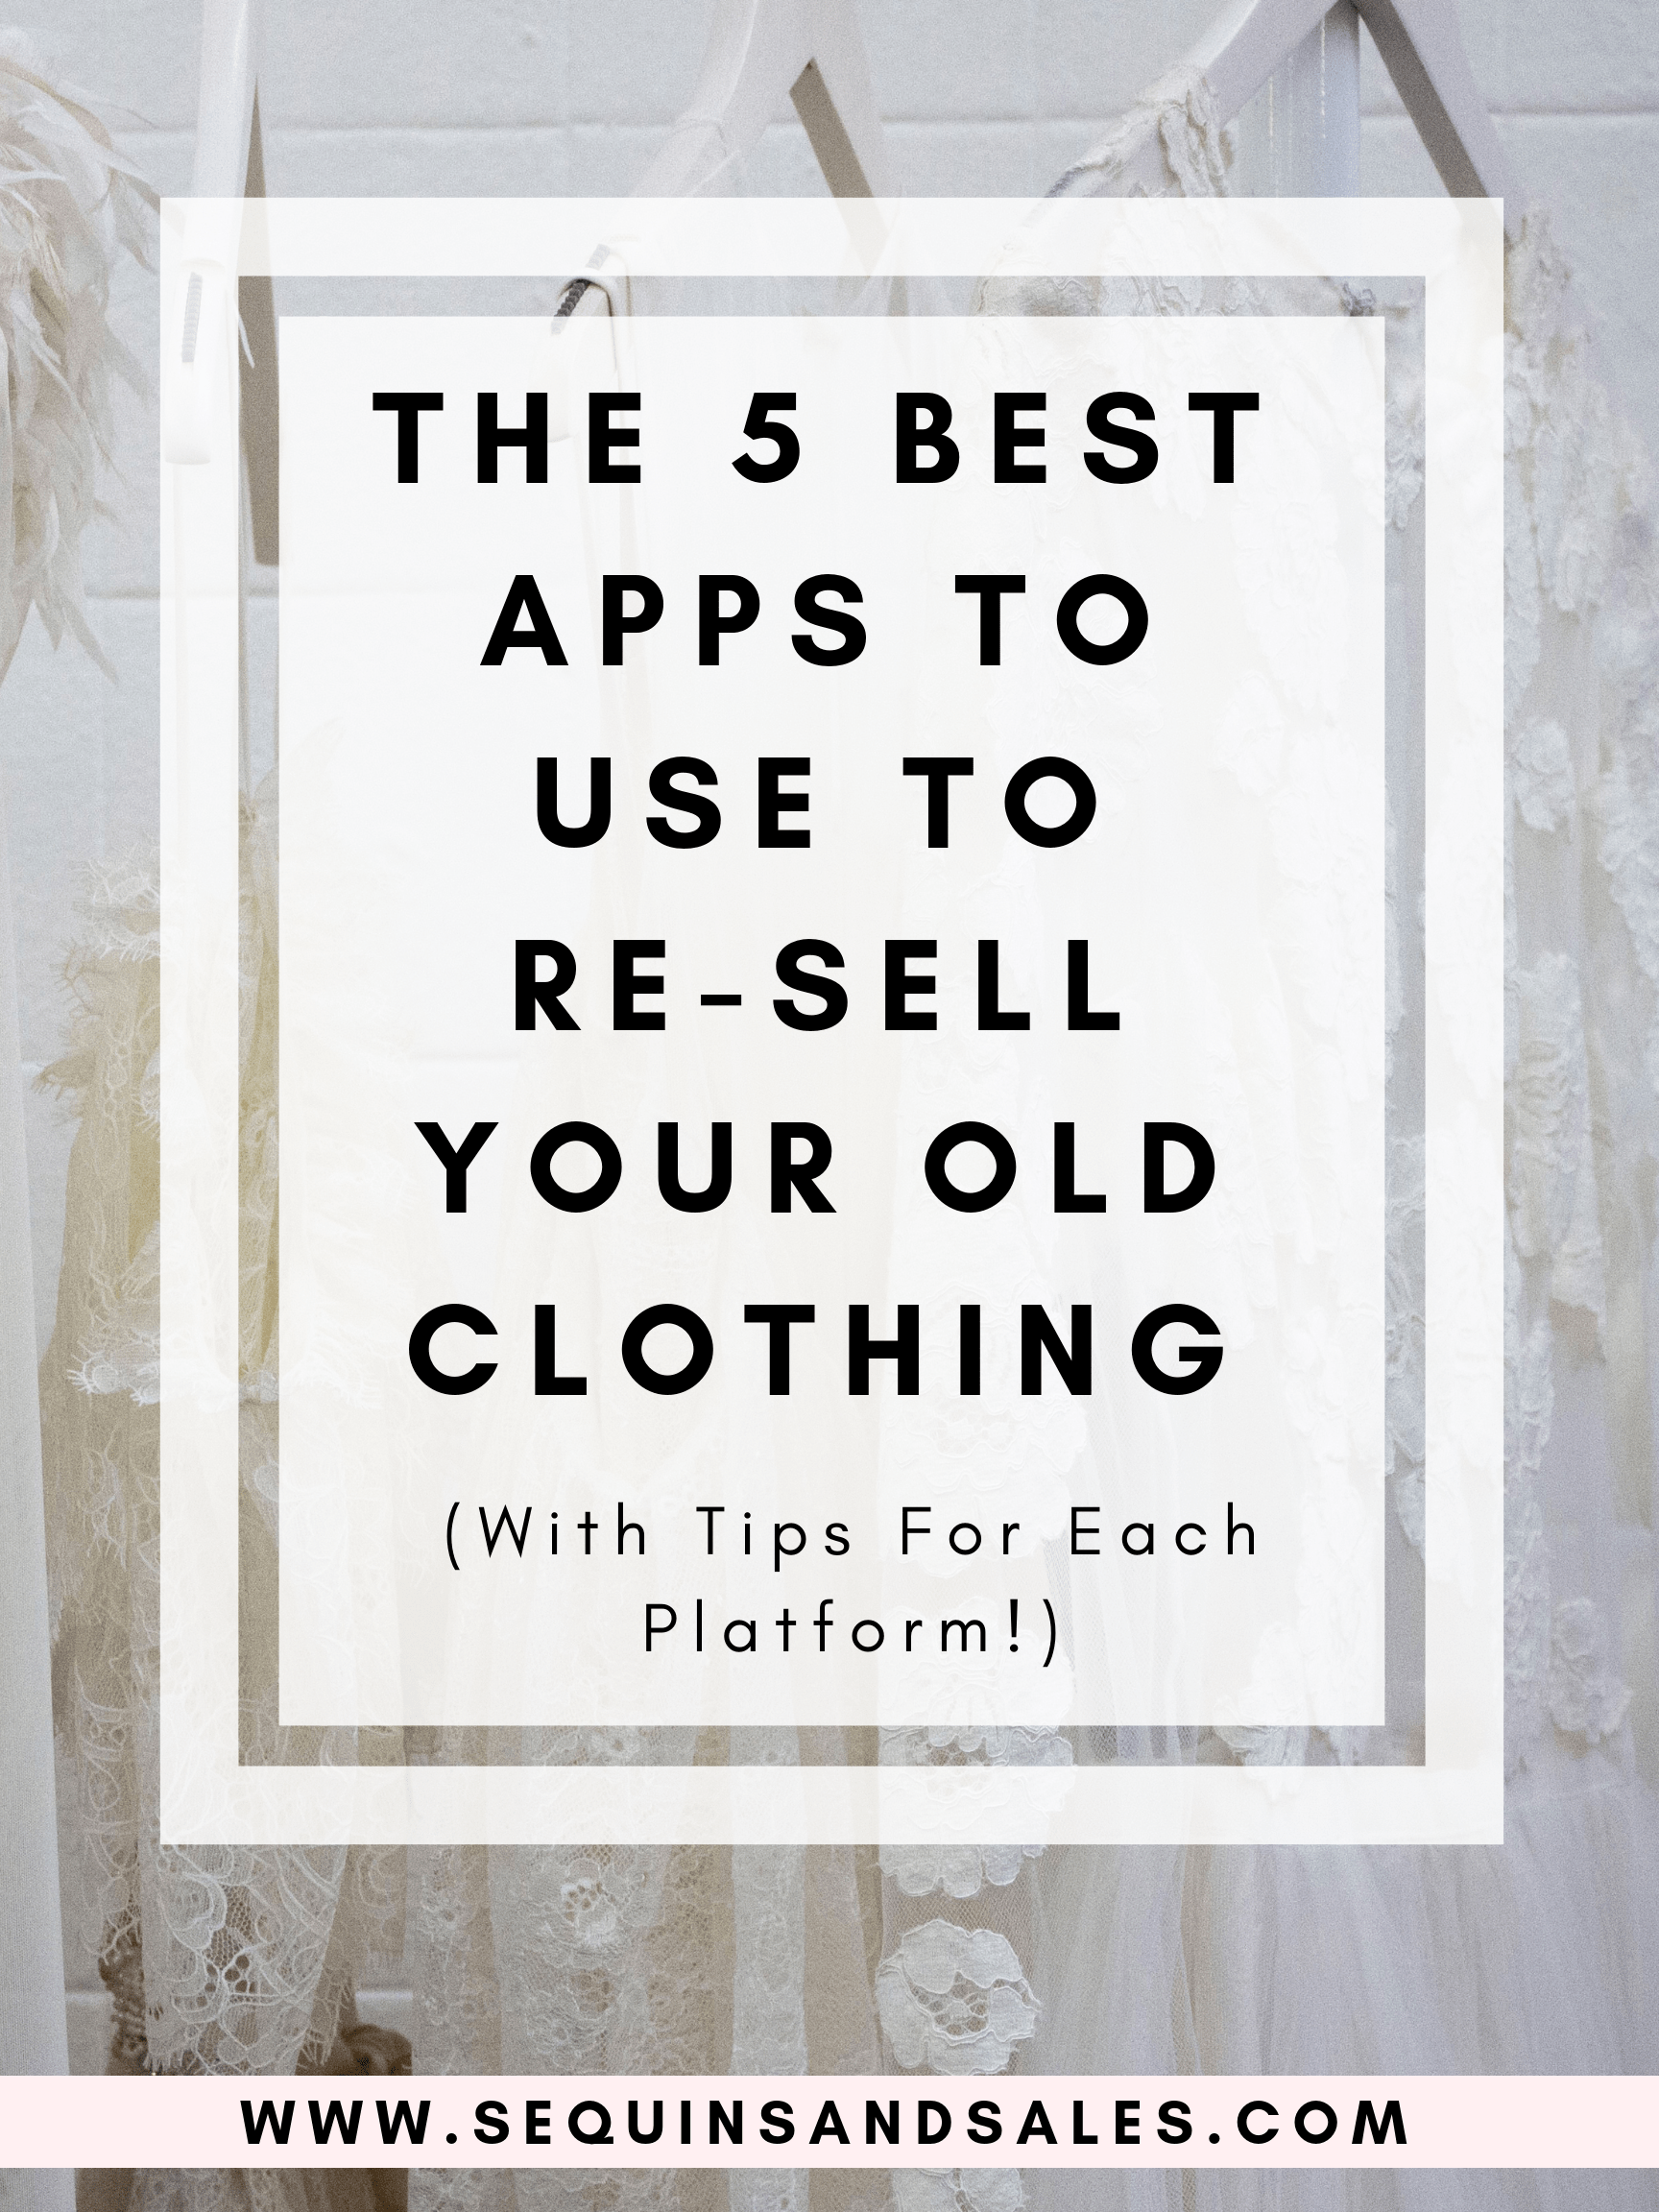 the-5-best-apps-to-use-to-resell-your-old-clothing